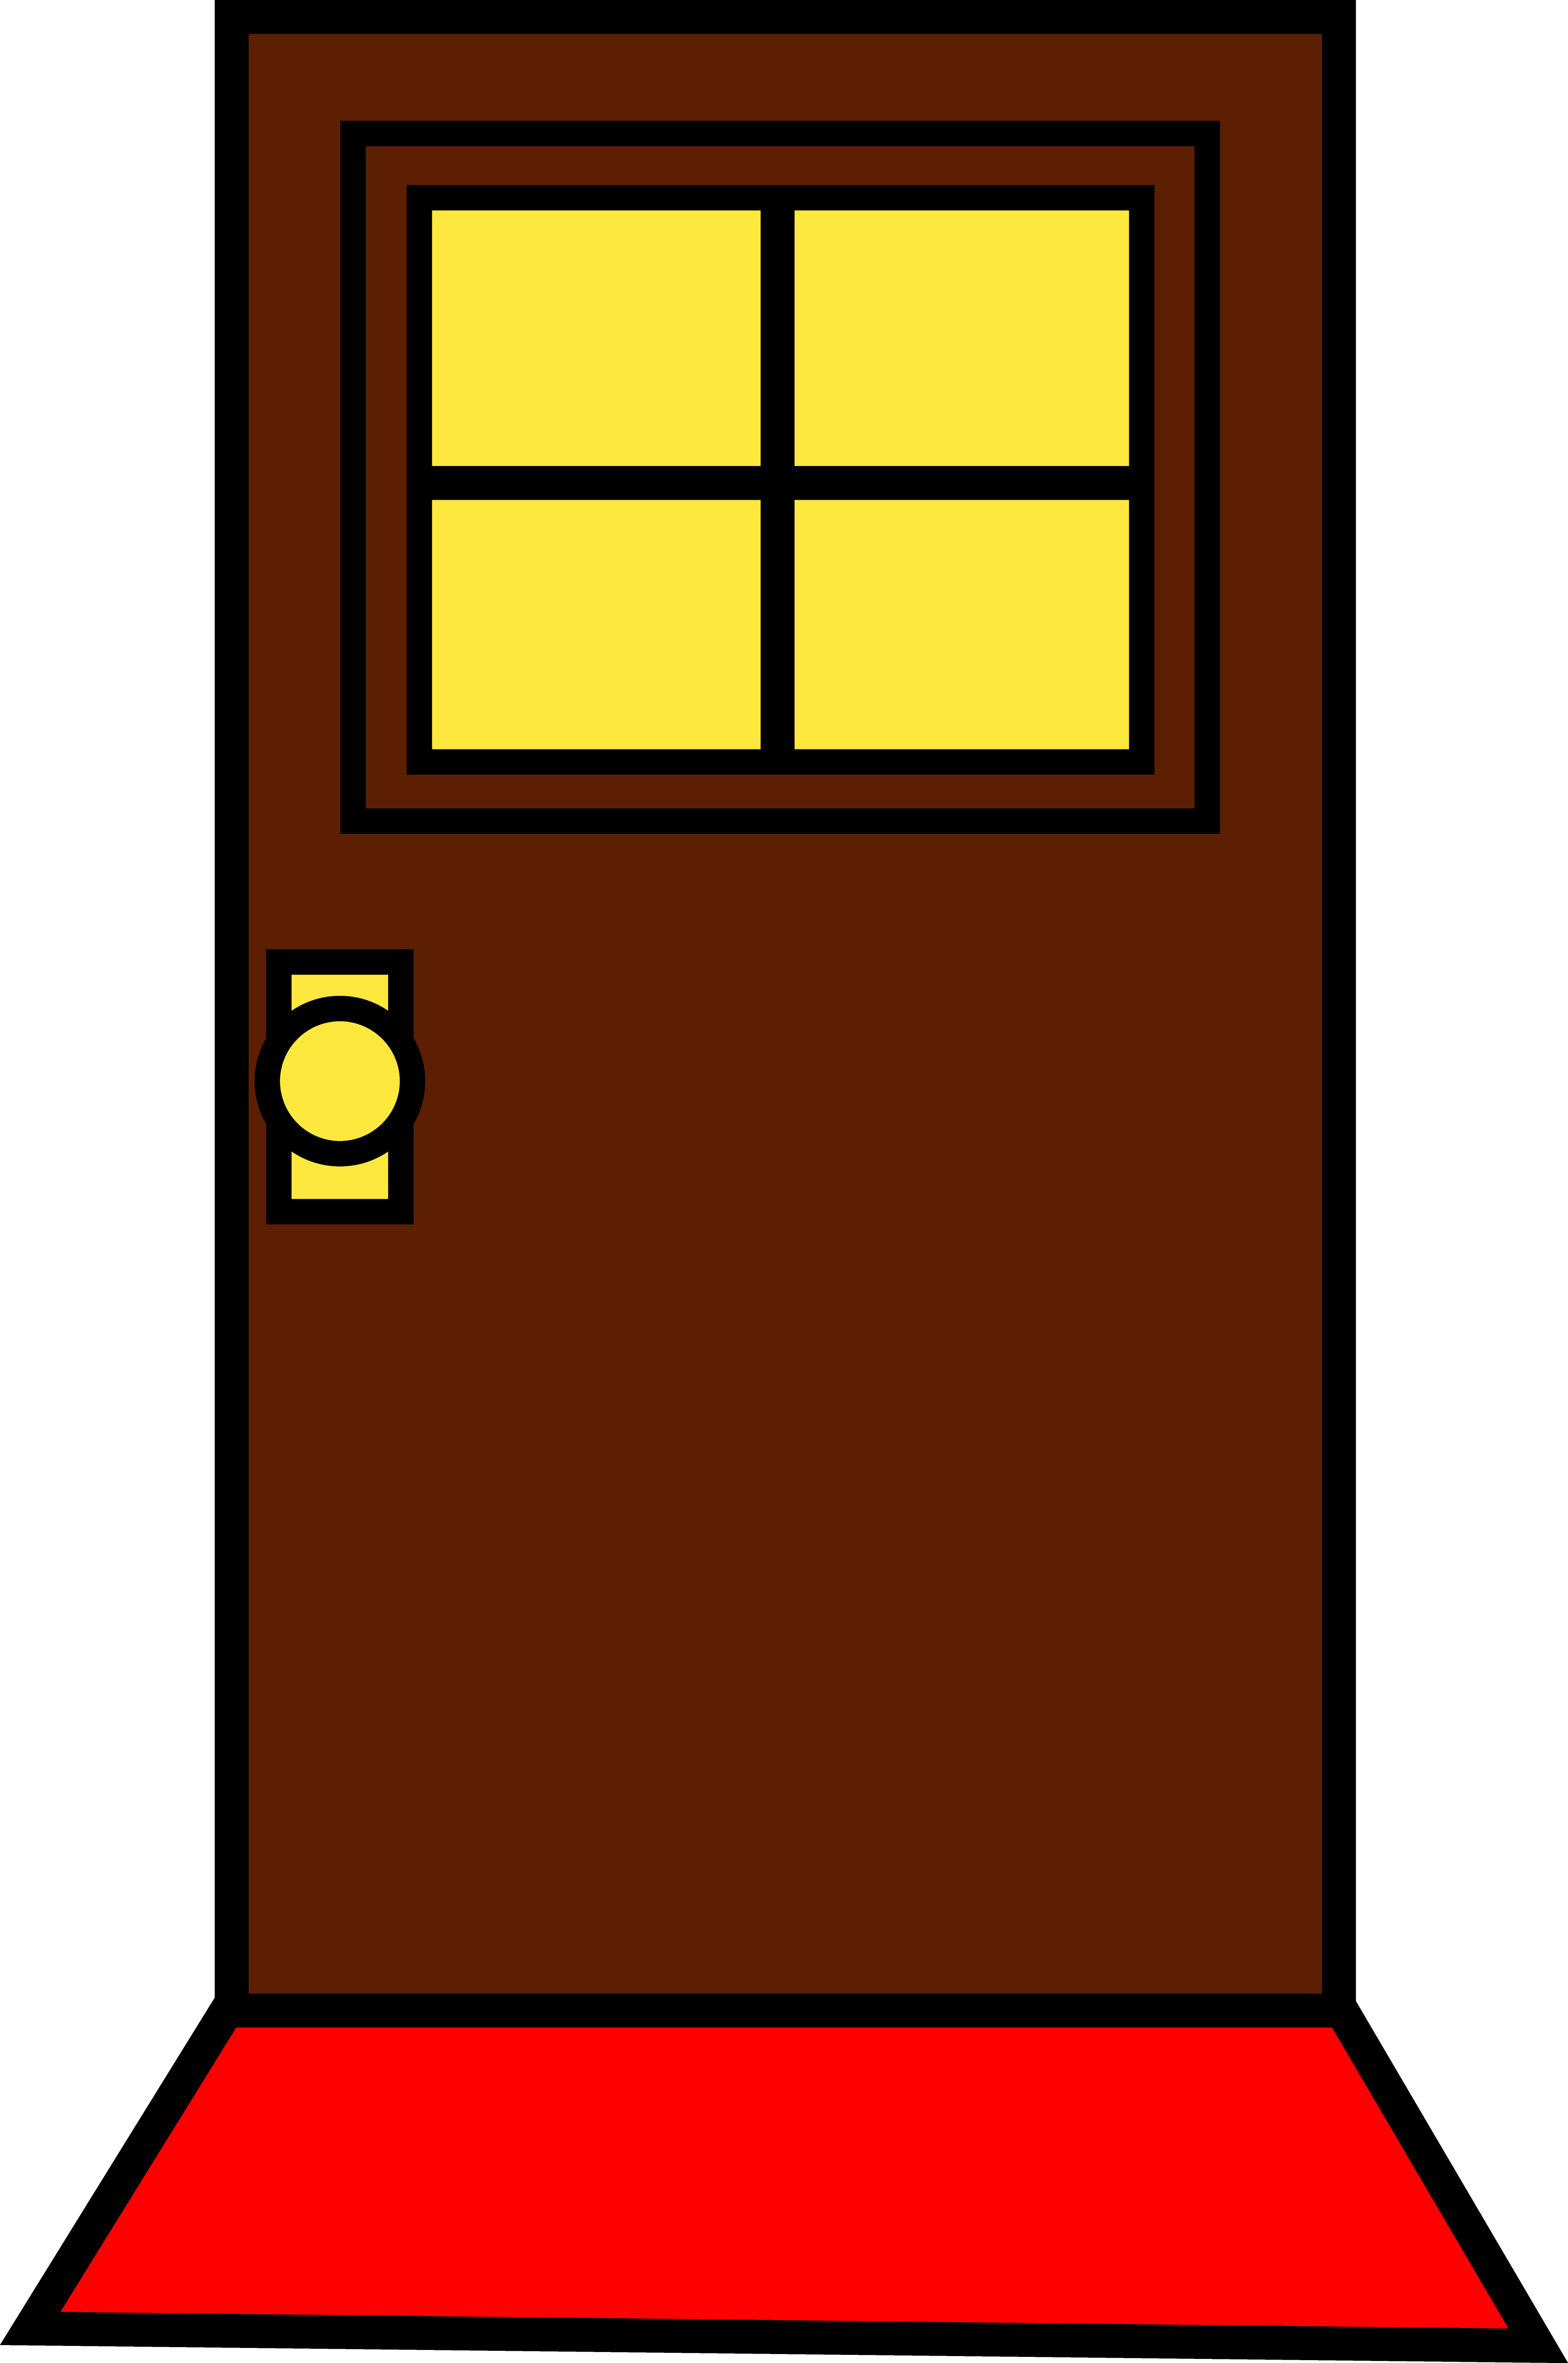 School window clipart graphic library download House Door Clipart graphic library download